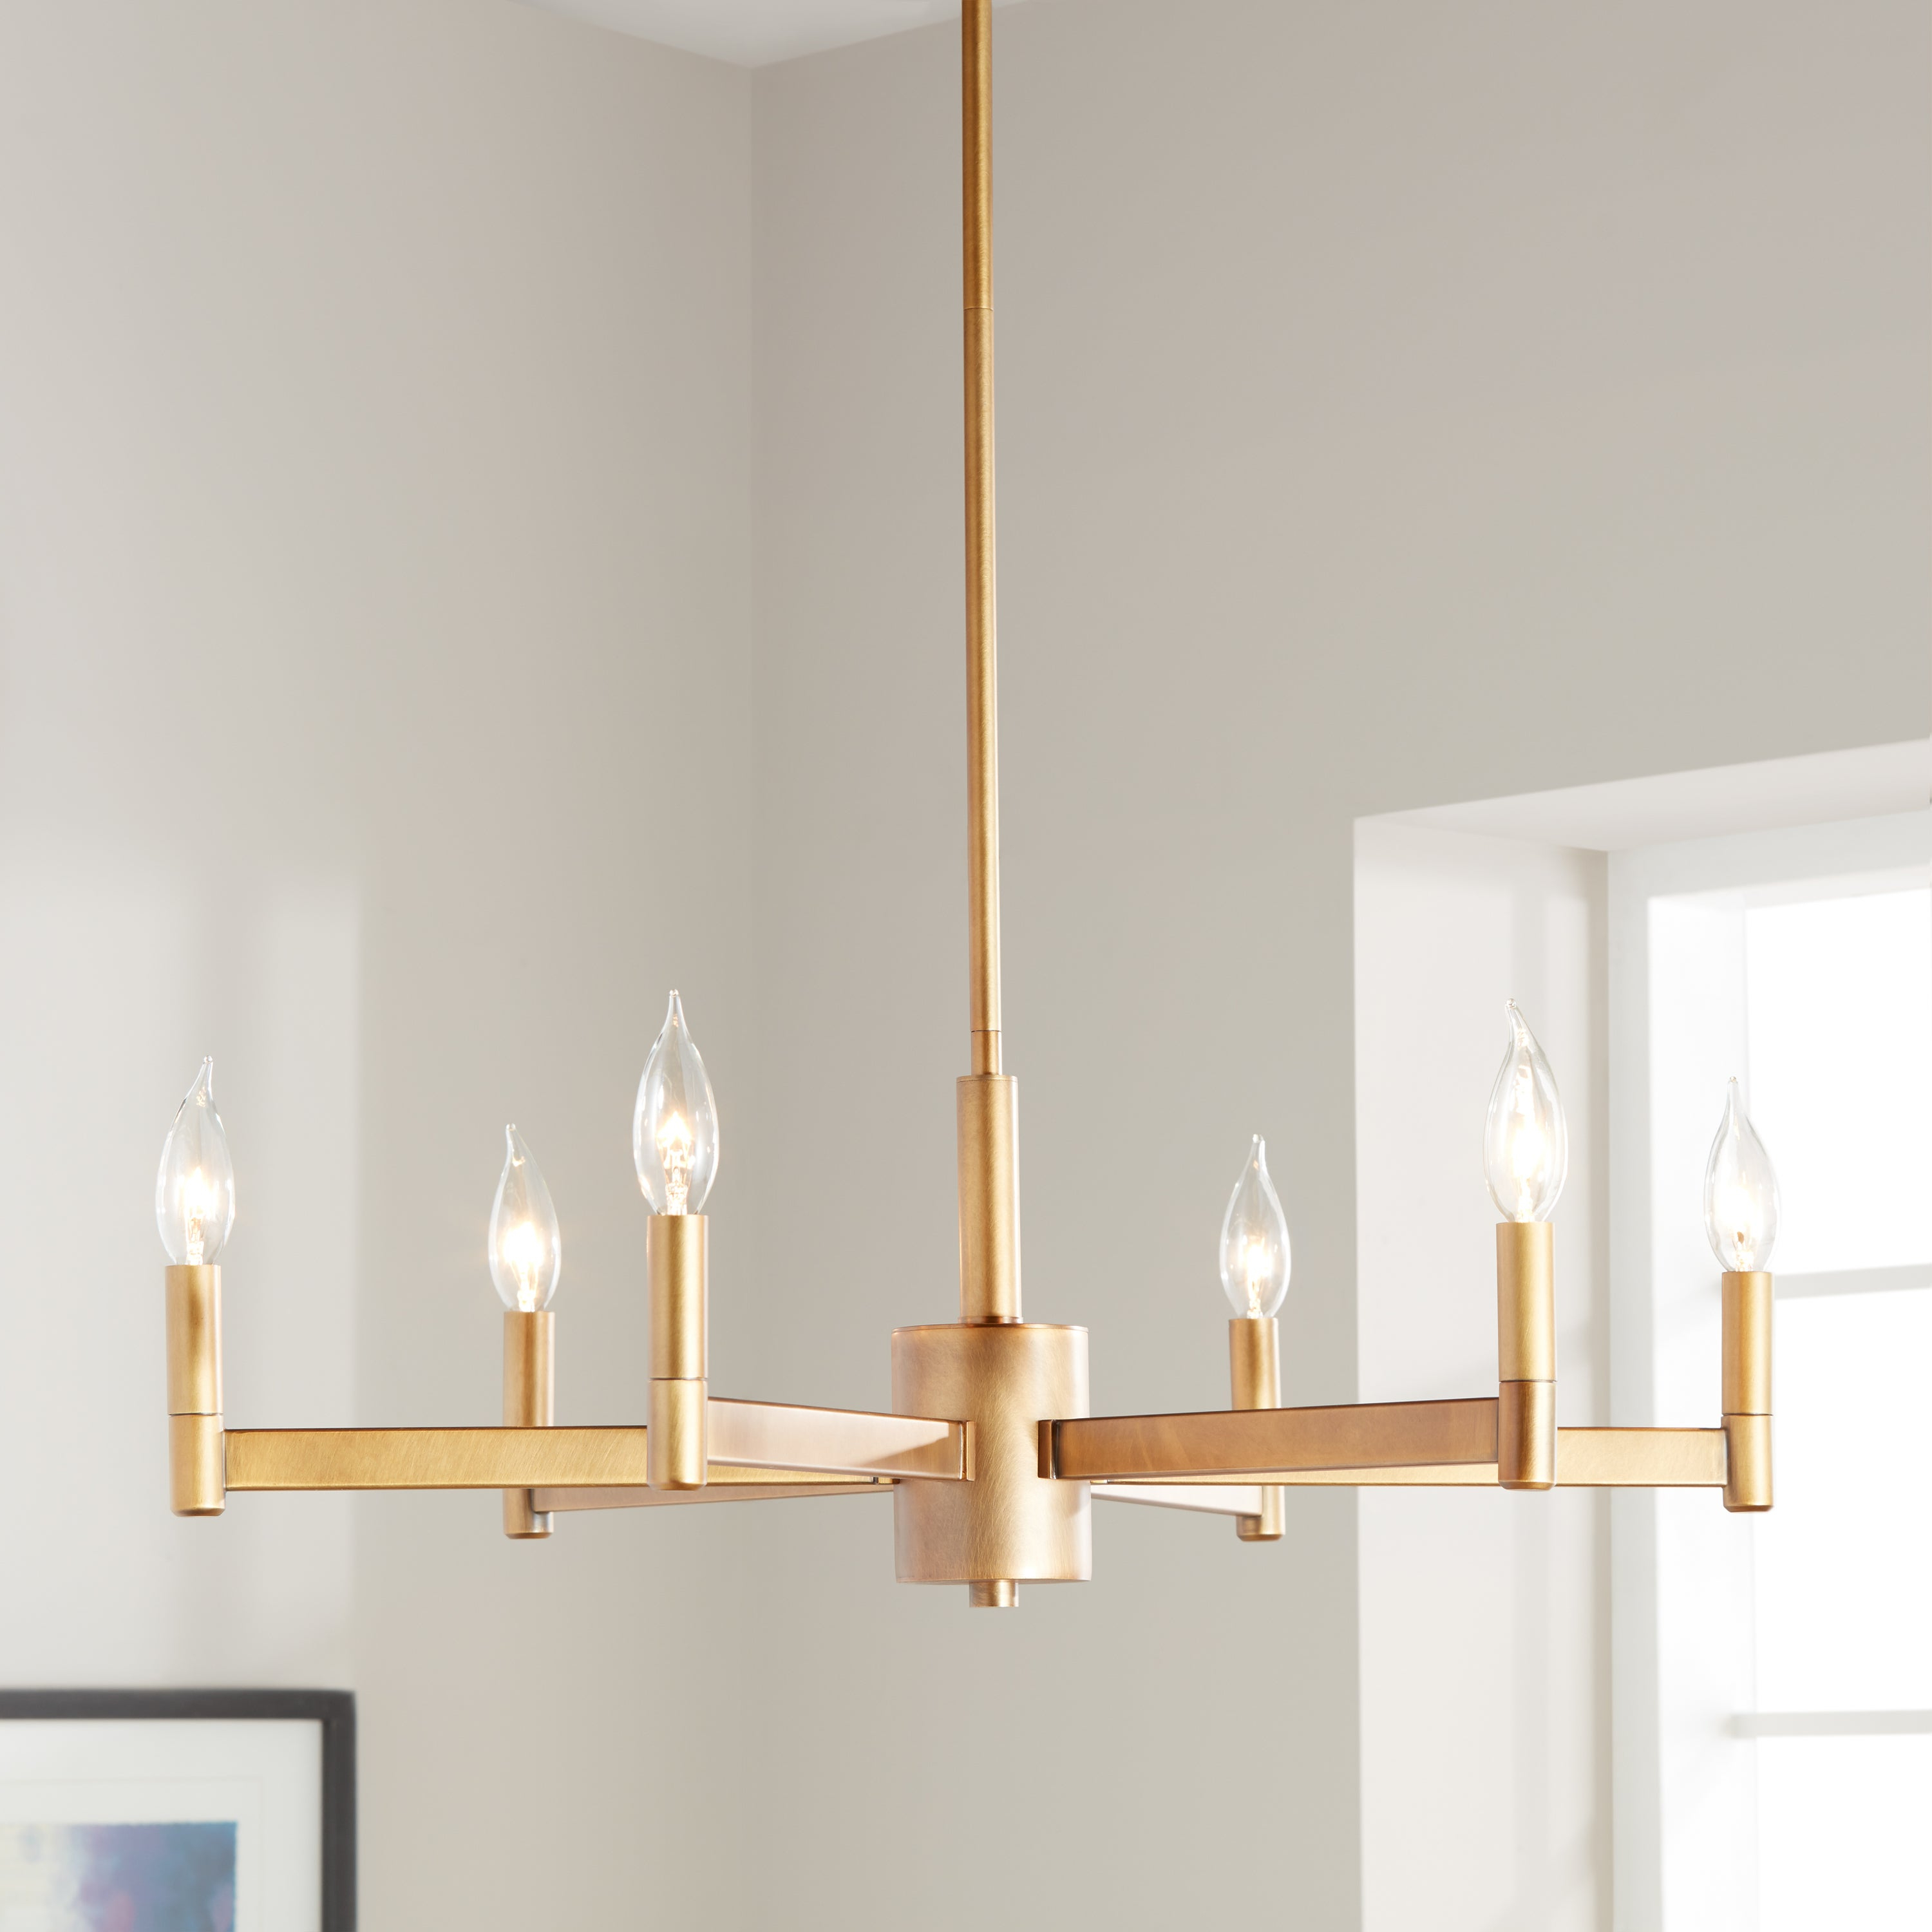 2019 Kichler Lighting Erzo Collection 6 Light Natural Brass Chandelier Inside Alden 6 Light Globe Chandeliers (View 20 of 25)